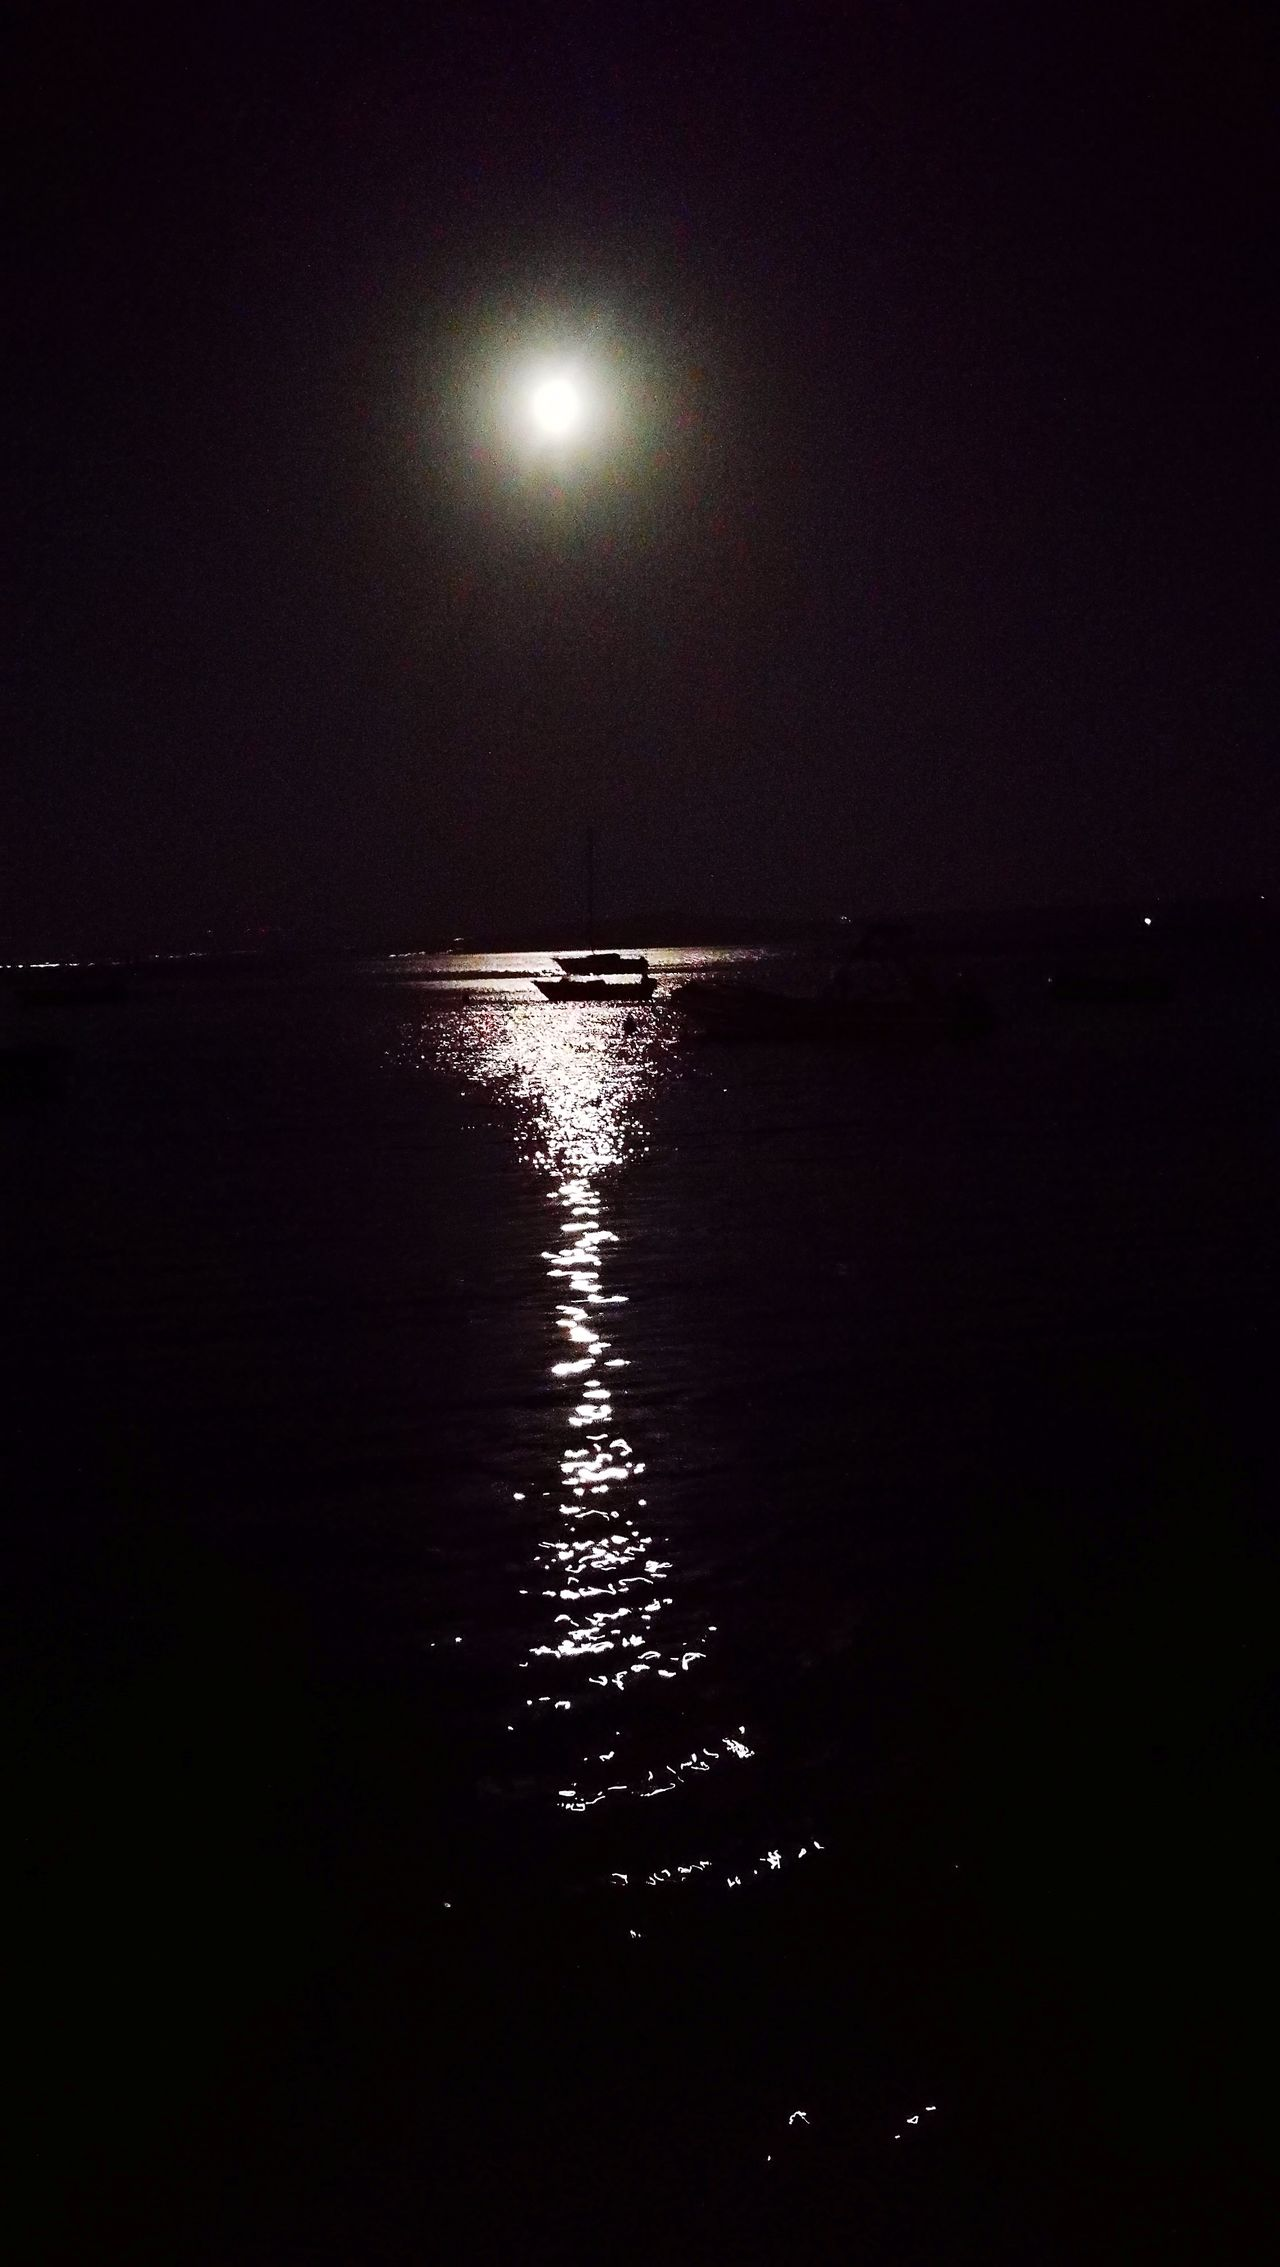 Moon Night Reflection Astronomy Water No People Star - Space Nature Scenics Tranquility Sea Space Outdoors Beauty In Nature Sky Illuminated Astrology Sign Galaxy Nature Beauty In Nature